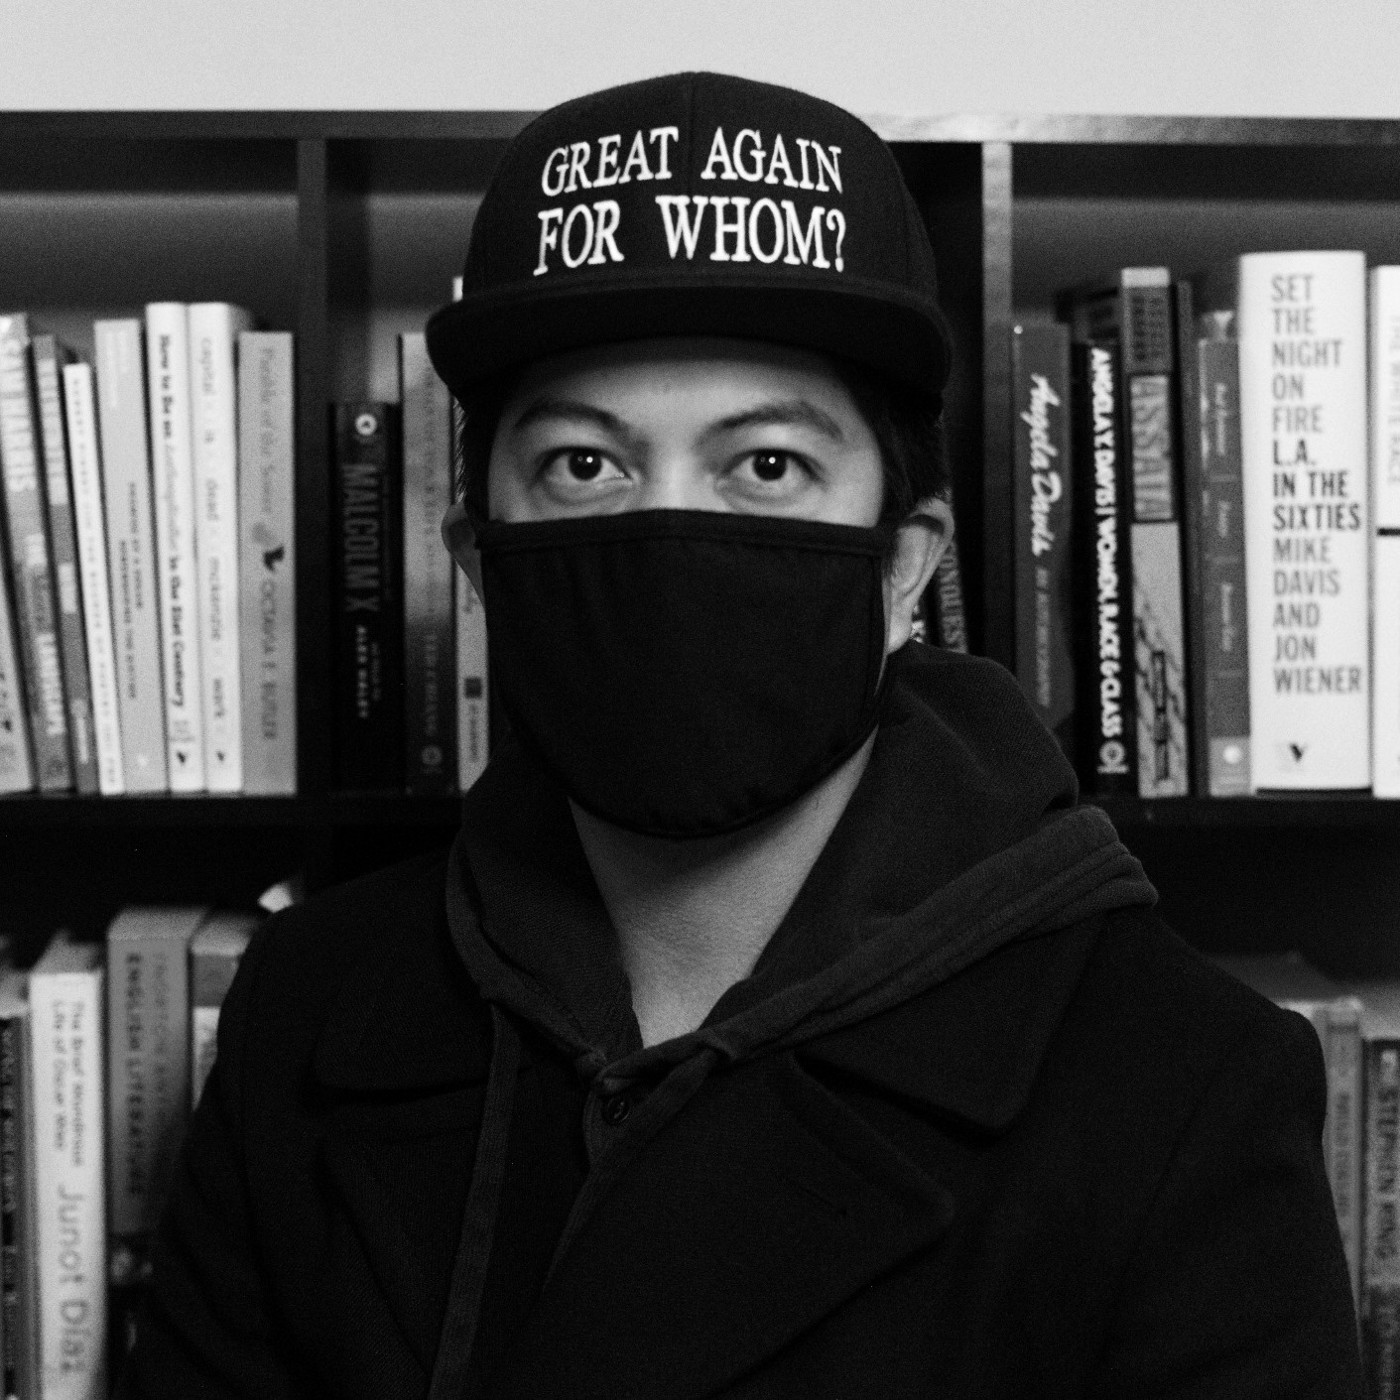 "This is an image of the poet, Michael Guevarra. He is masked, wearing all black and a hat that reads ""Great Again For Whom?"""